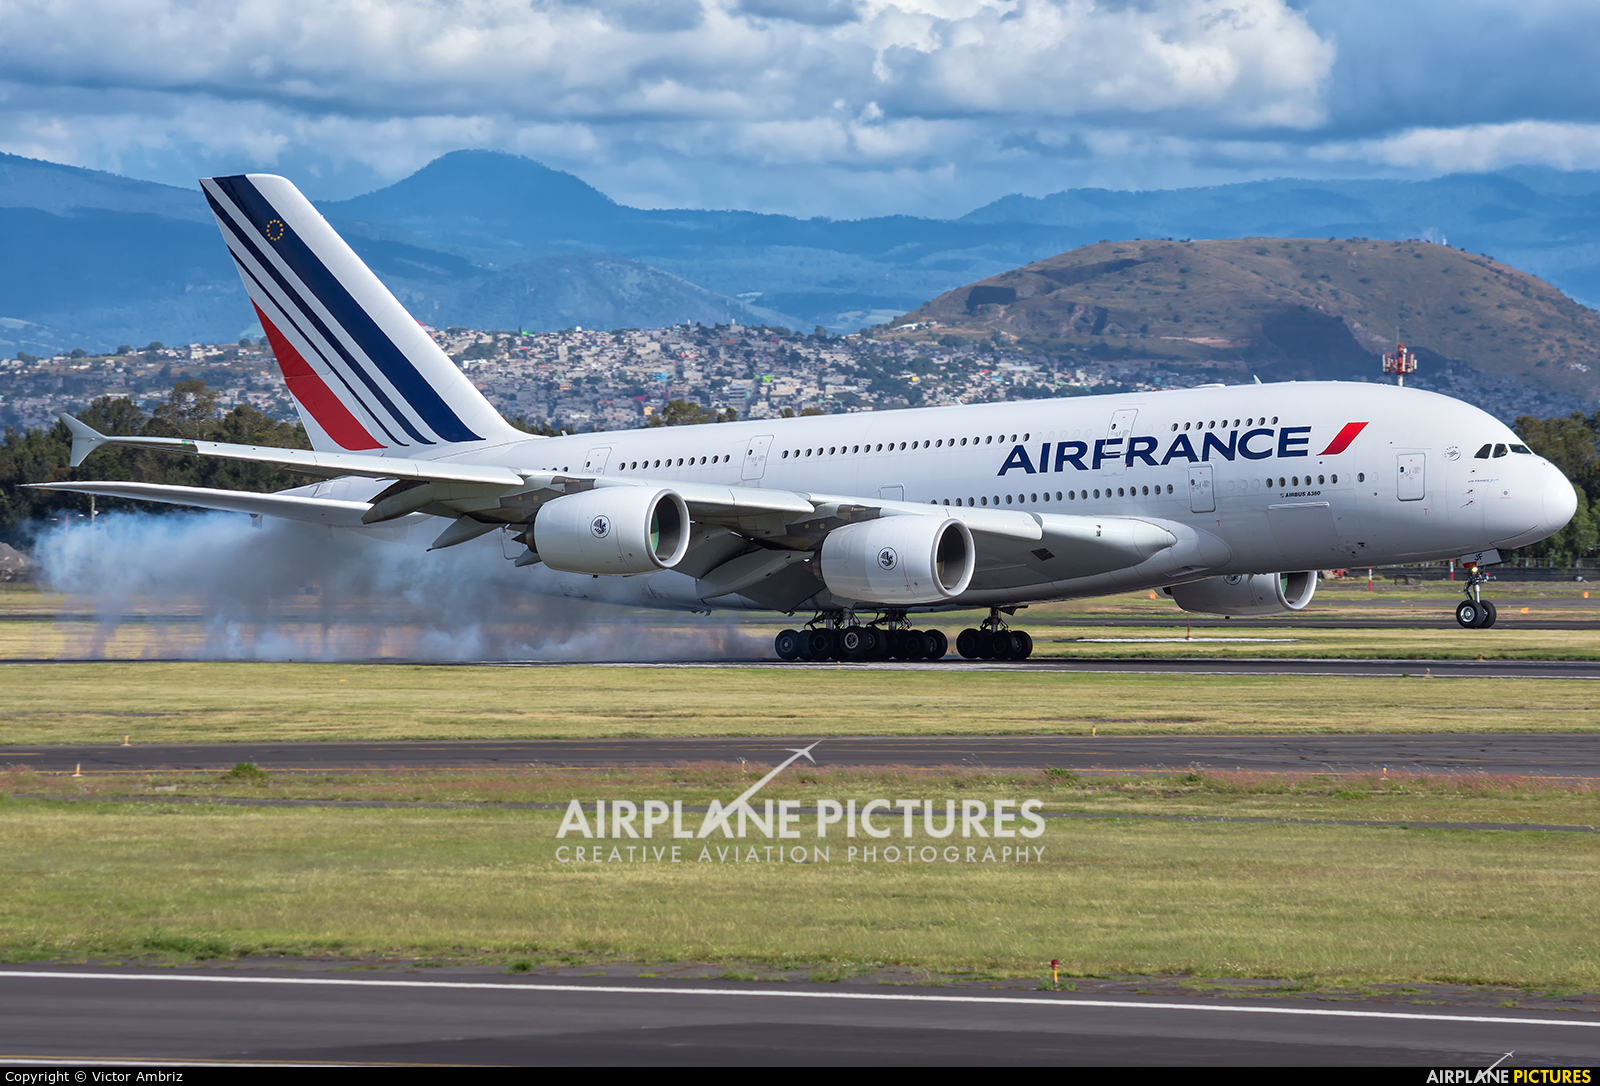 Air France F-HPJF aircraft at Mexico City - Licenciado Benito Juarez Intl